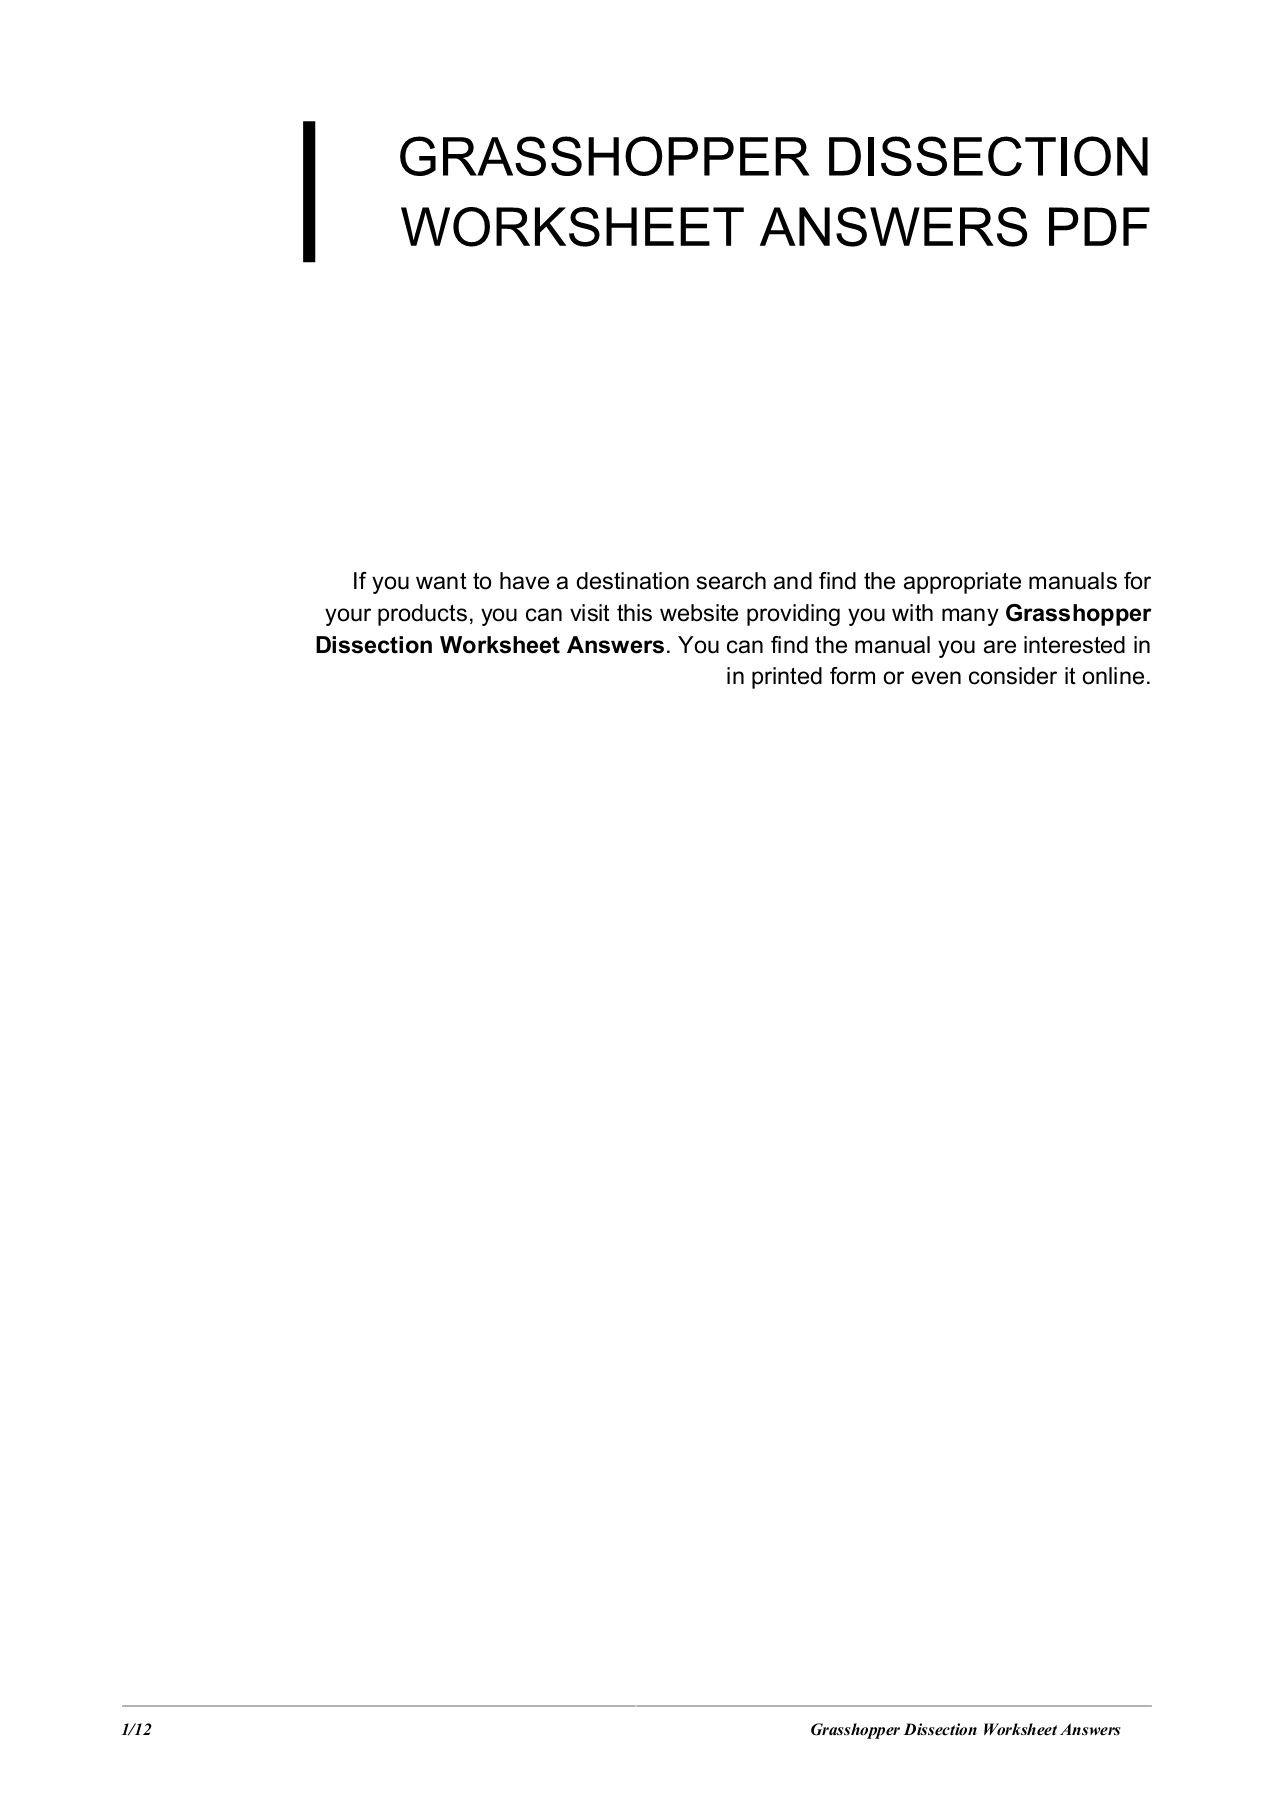 Grasshopper Dissection Worksheet Answers - mucaiyang net